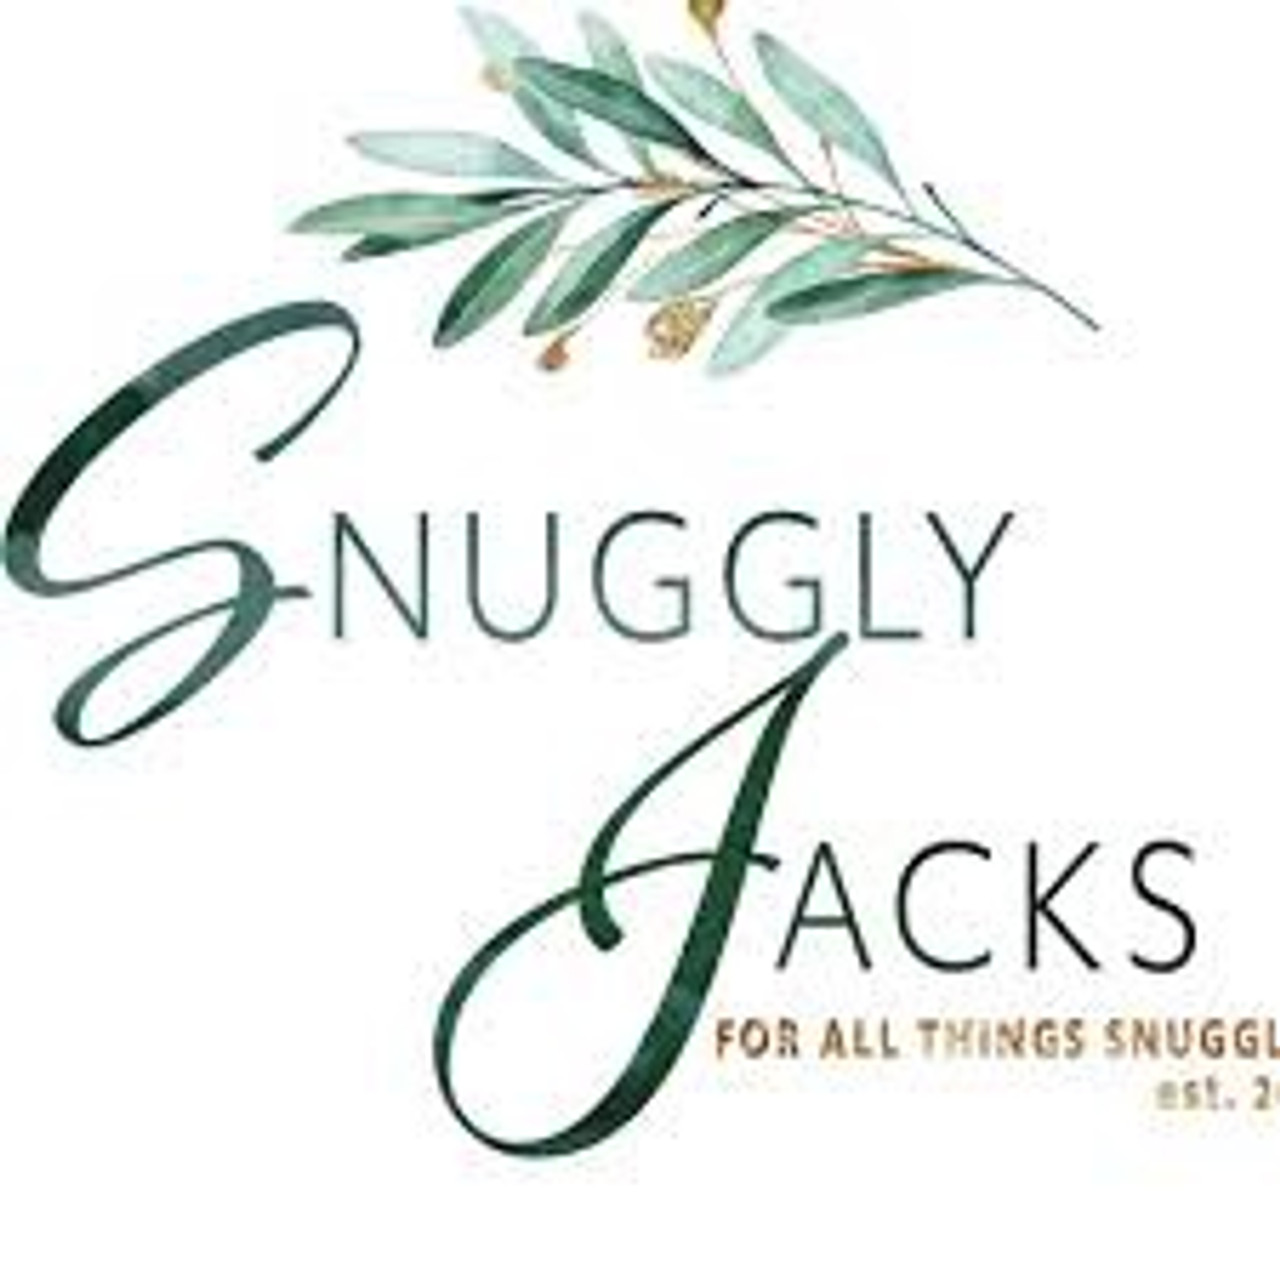 Snuggly Jacks Organic Muslin Swaddle Wrap   Baby Barn Discounts Snuggly Jacks lightweight and breathable swaddle is perfectly soft and luxurious for summer nights sleep.